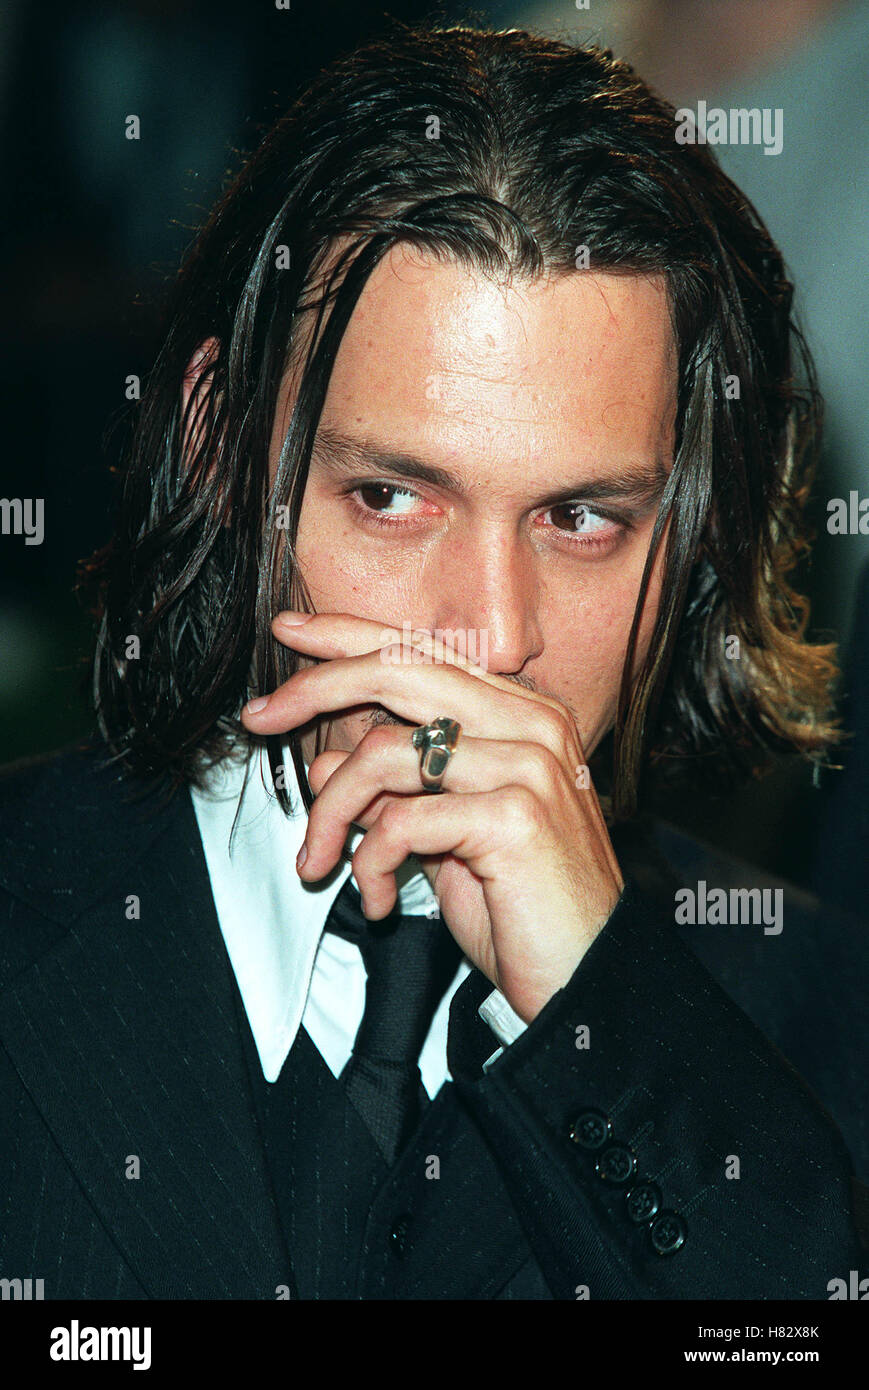 depp from hell 2001 stock photos amp depp from hell 2001